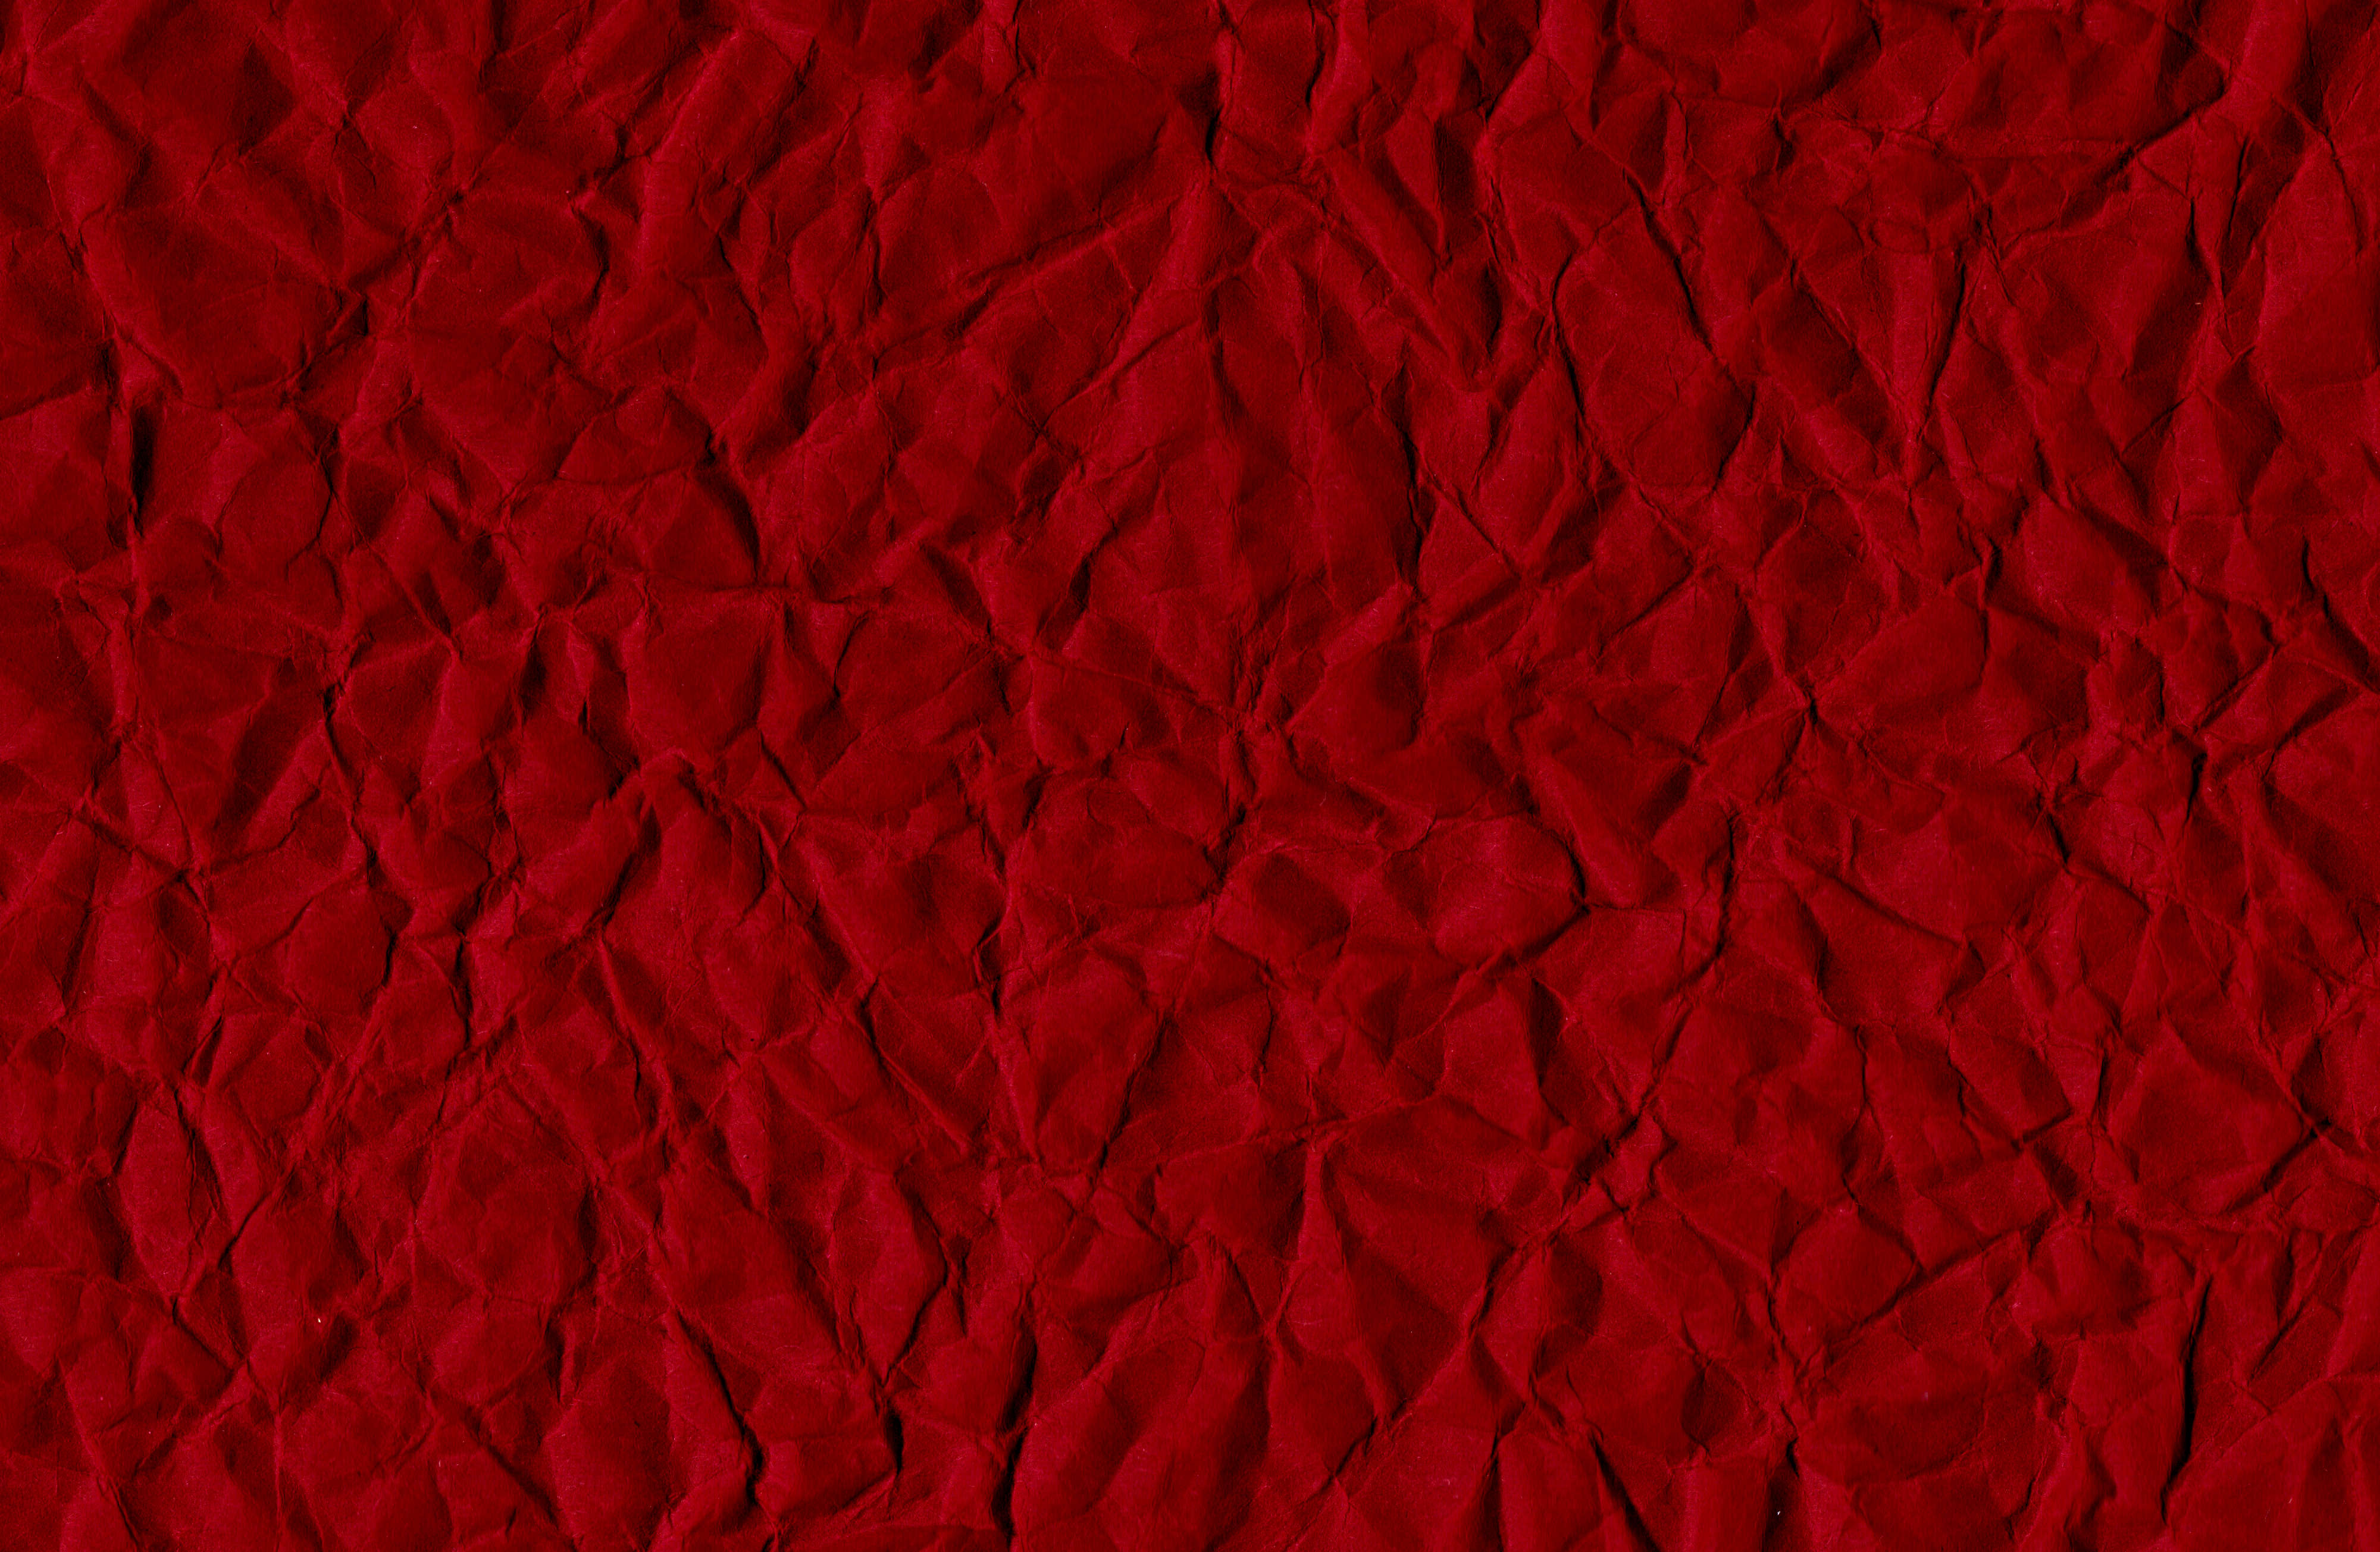 5 Wrinkled Red Paper Textures (JPG) | OnlyGFX.com